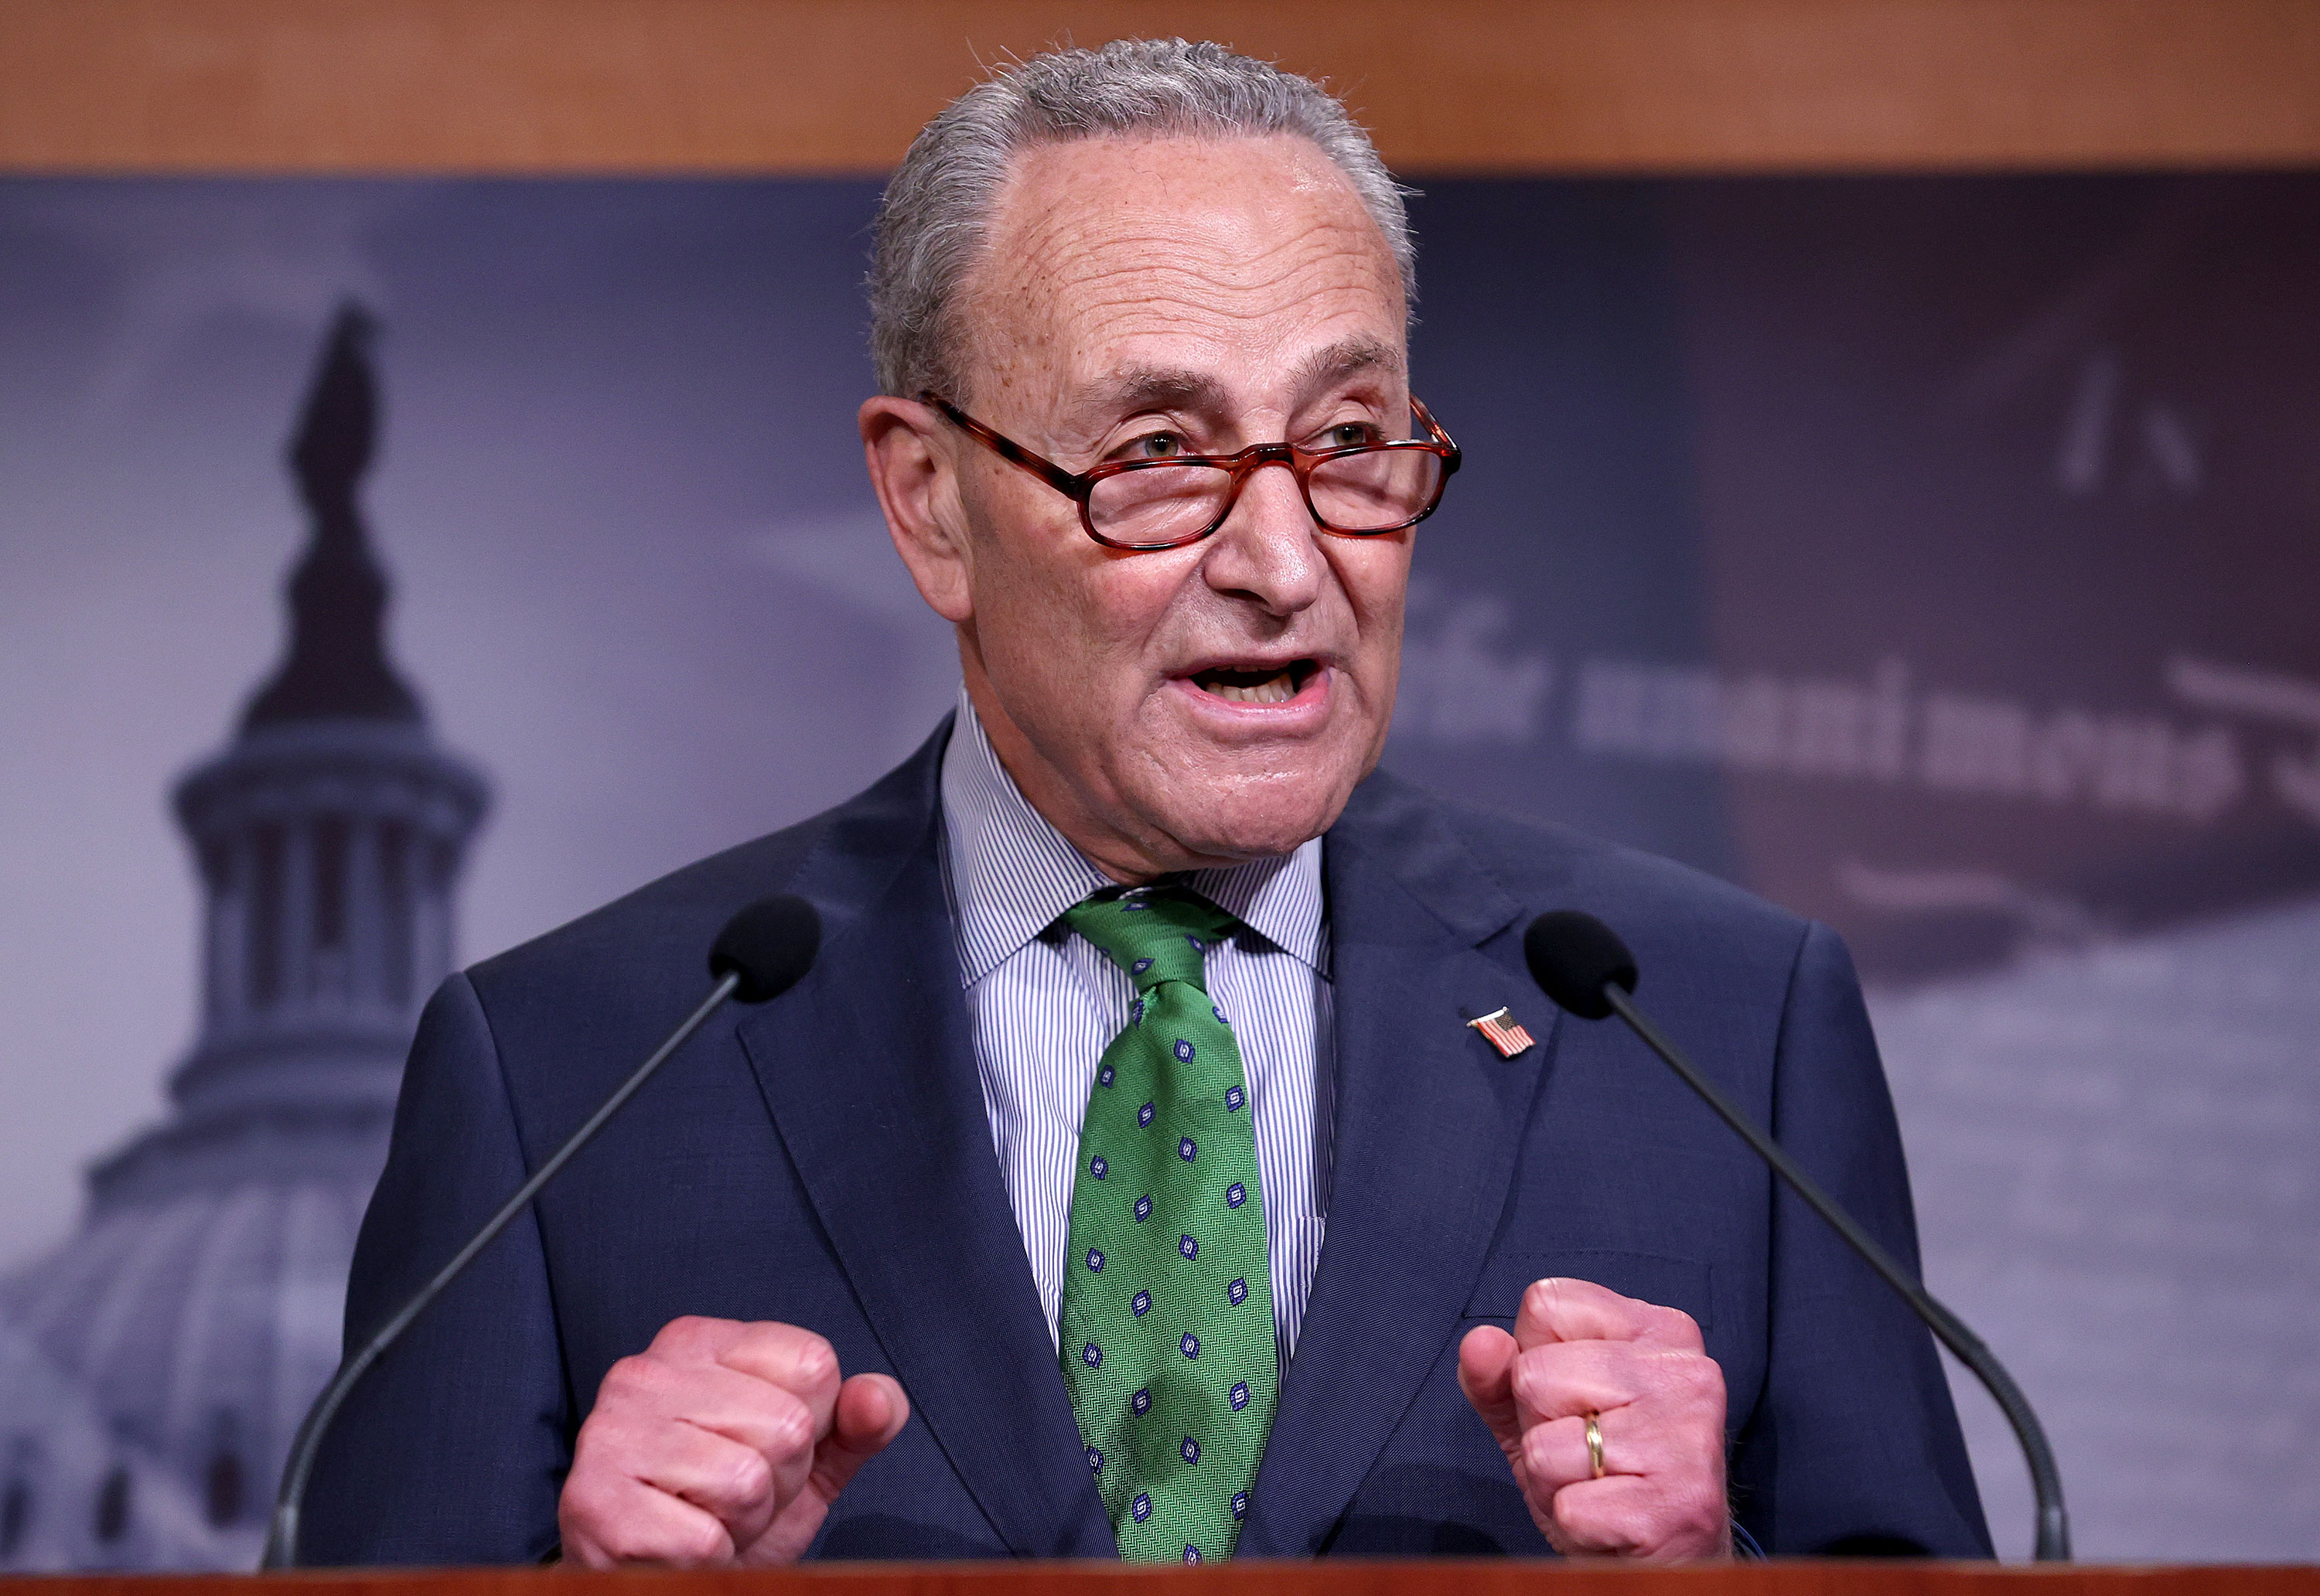 Sen. Chuck Schumer speaks at a press conference on June 9.